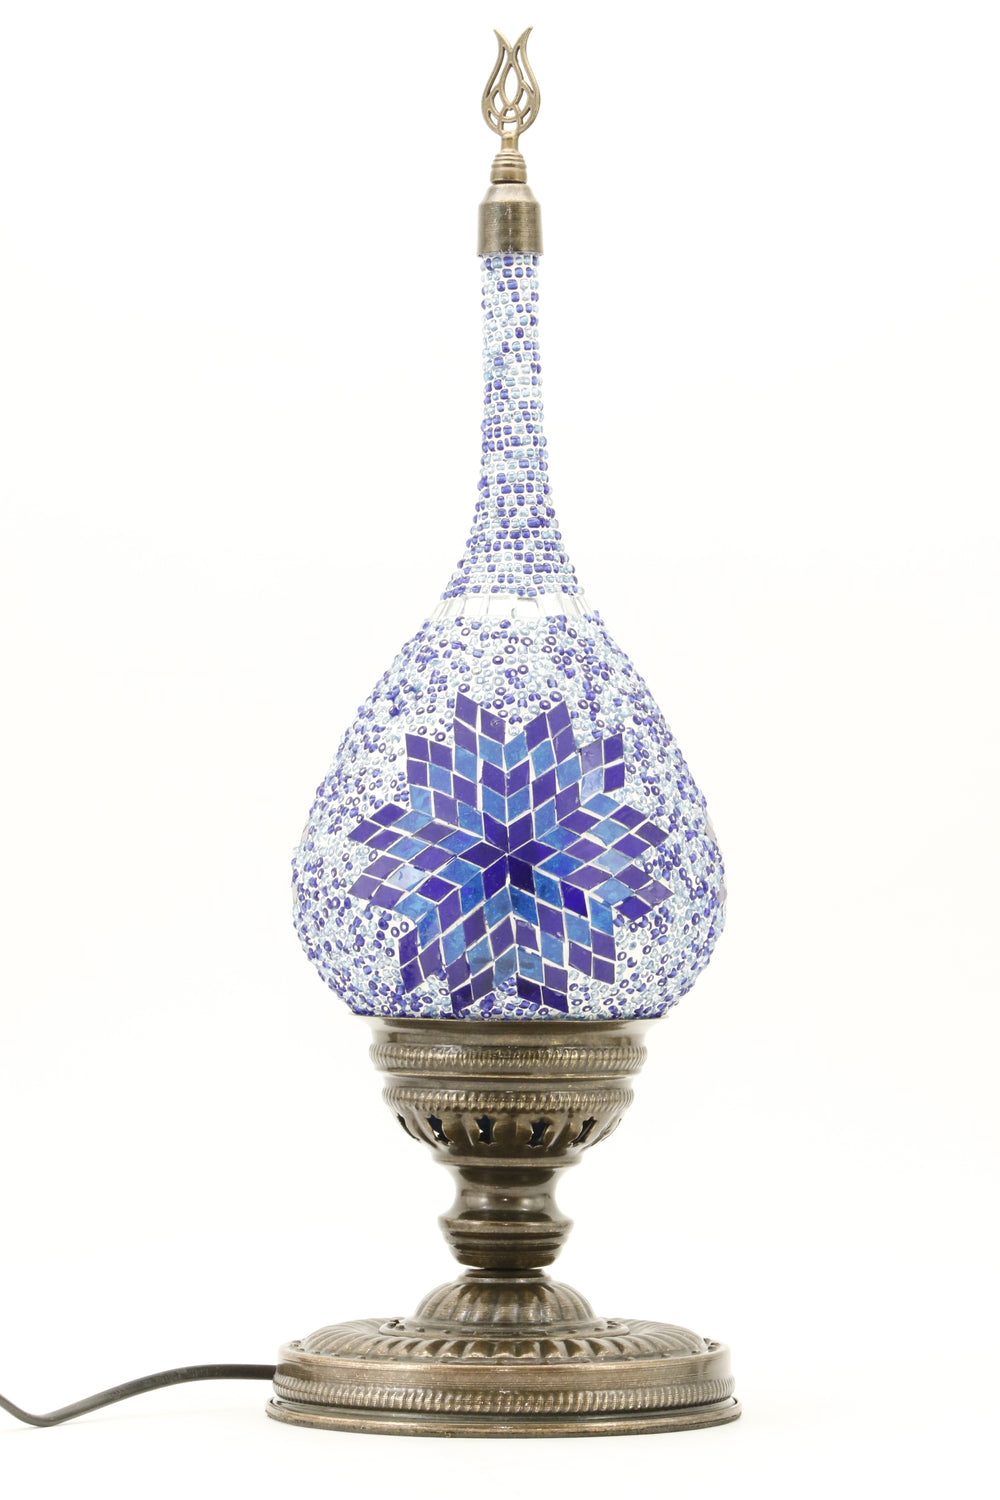 TEAR DROP SHAPED TURKISH MOSAIC TABE LAMP BLUE-TURNED OFF